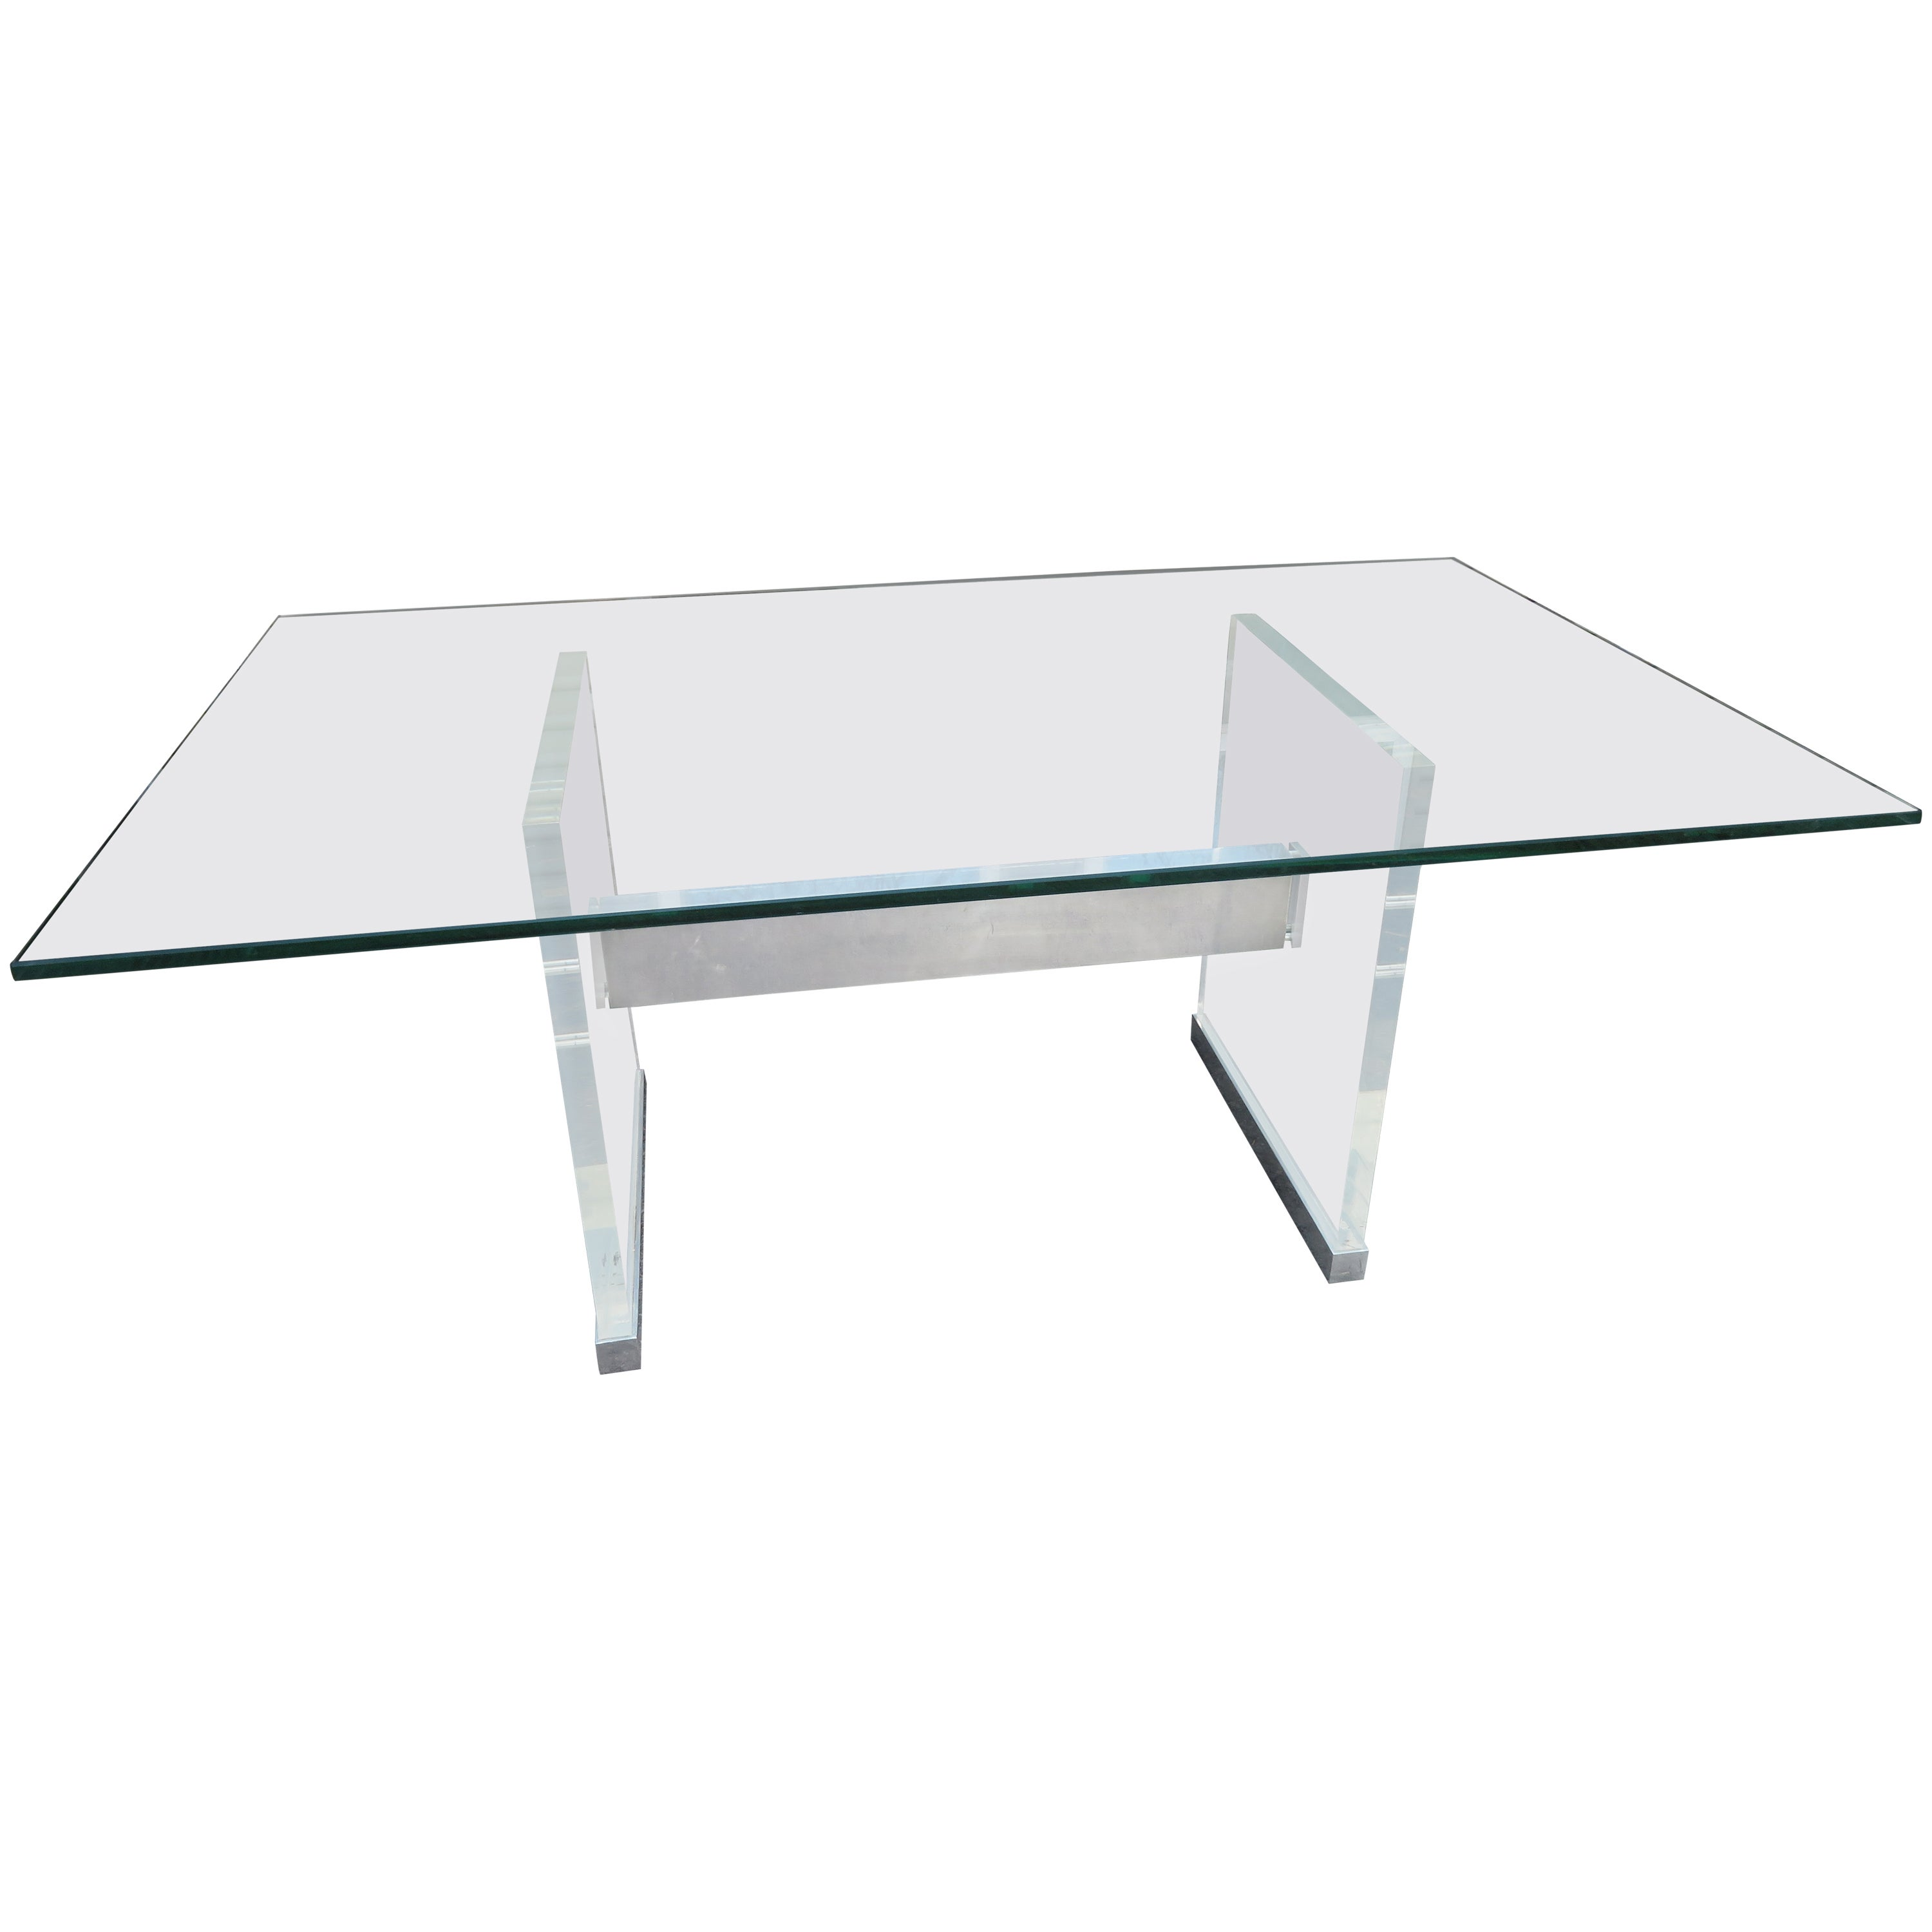 Chunky Thick Lucite Aluminium Dining Room Table Desk Mid-Century Modern